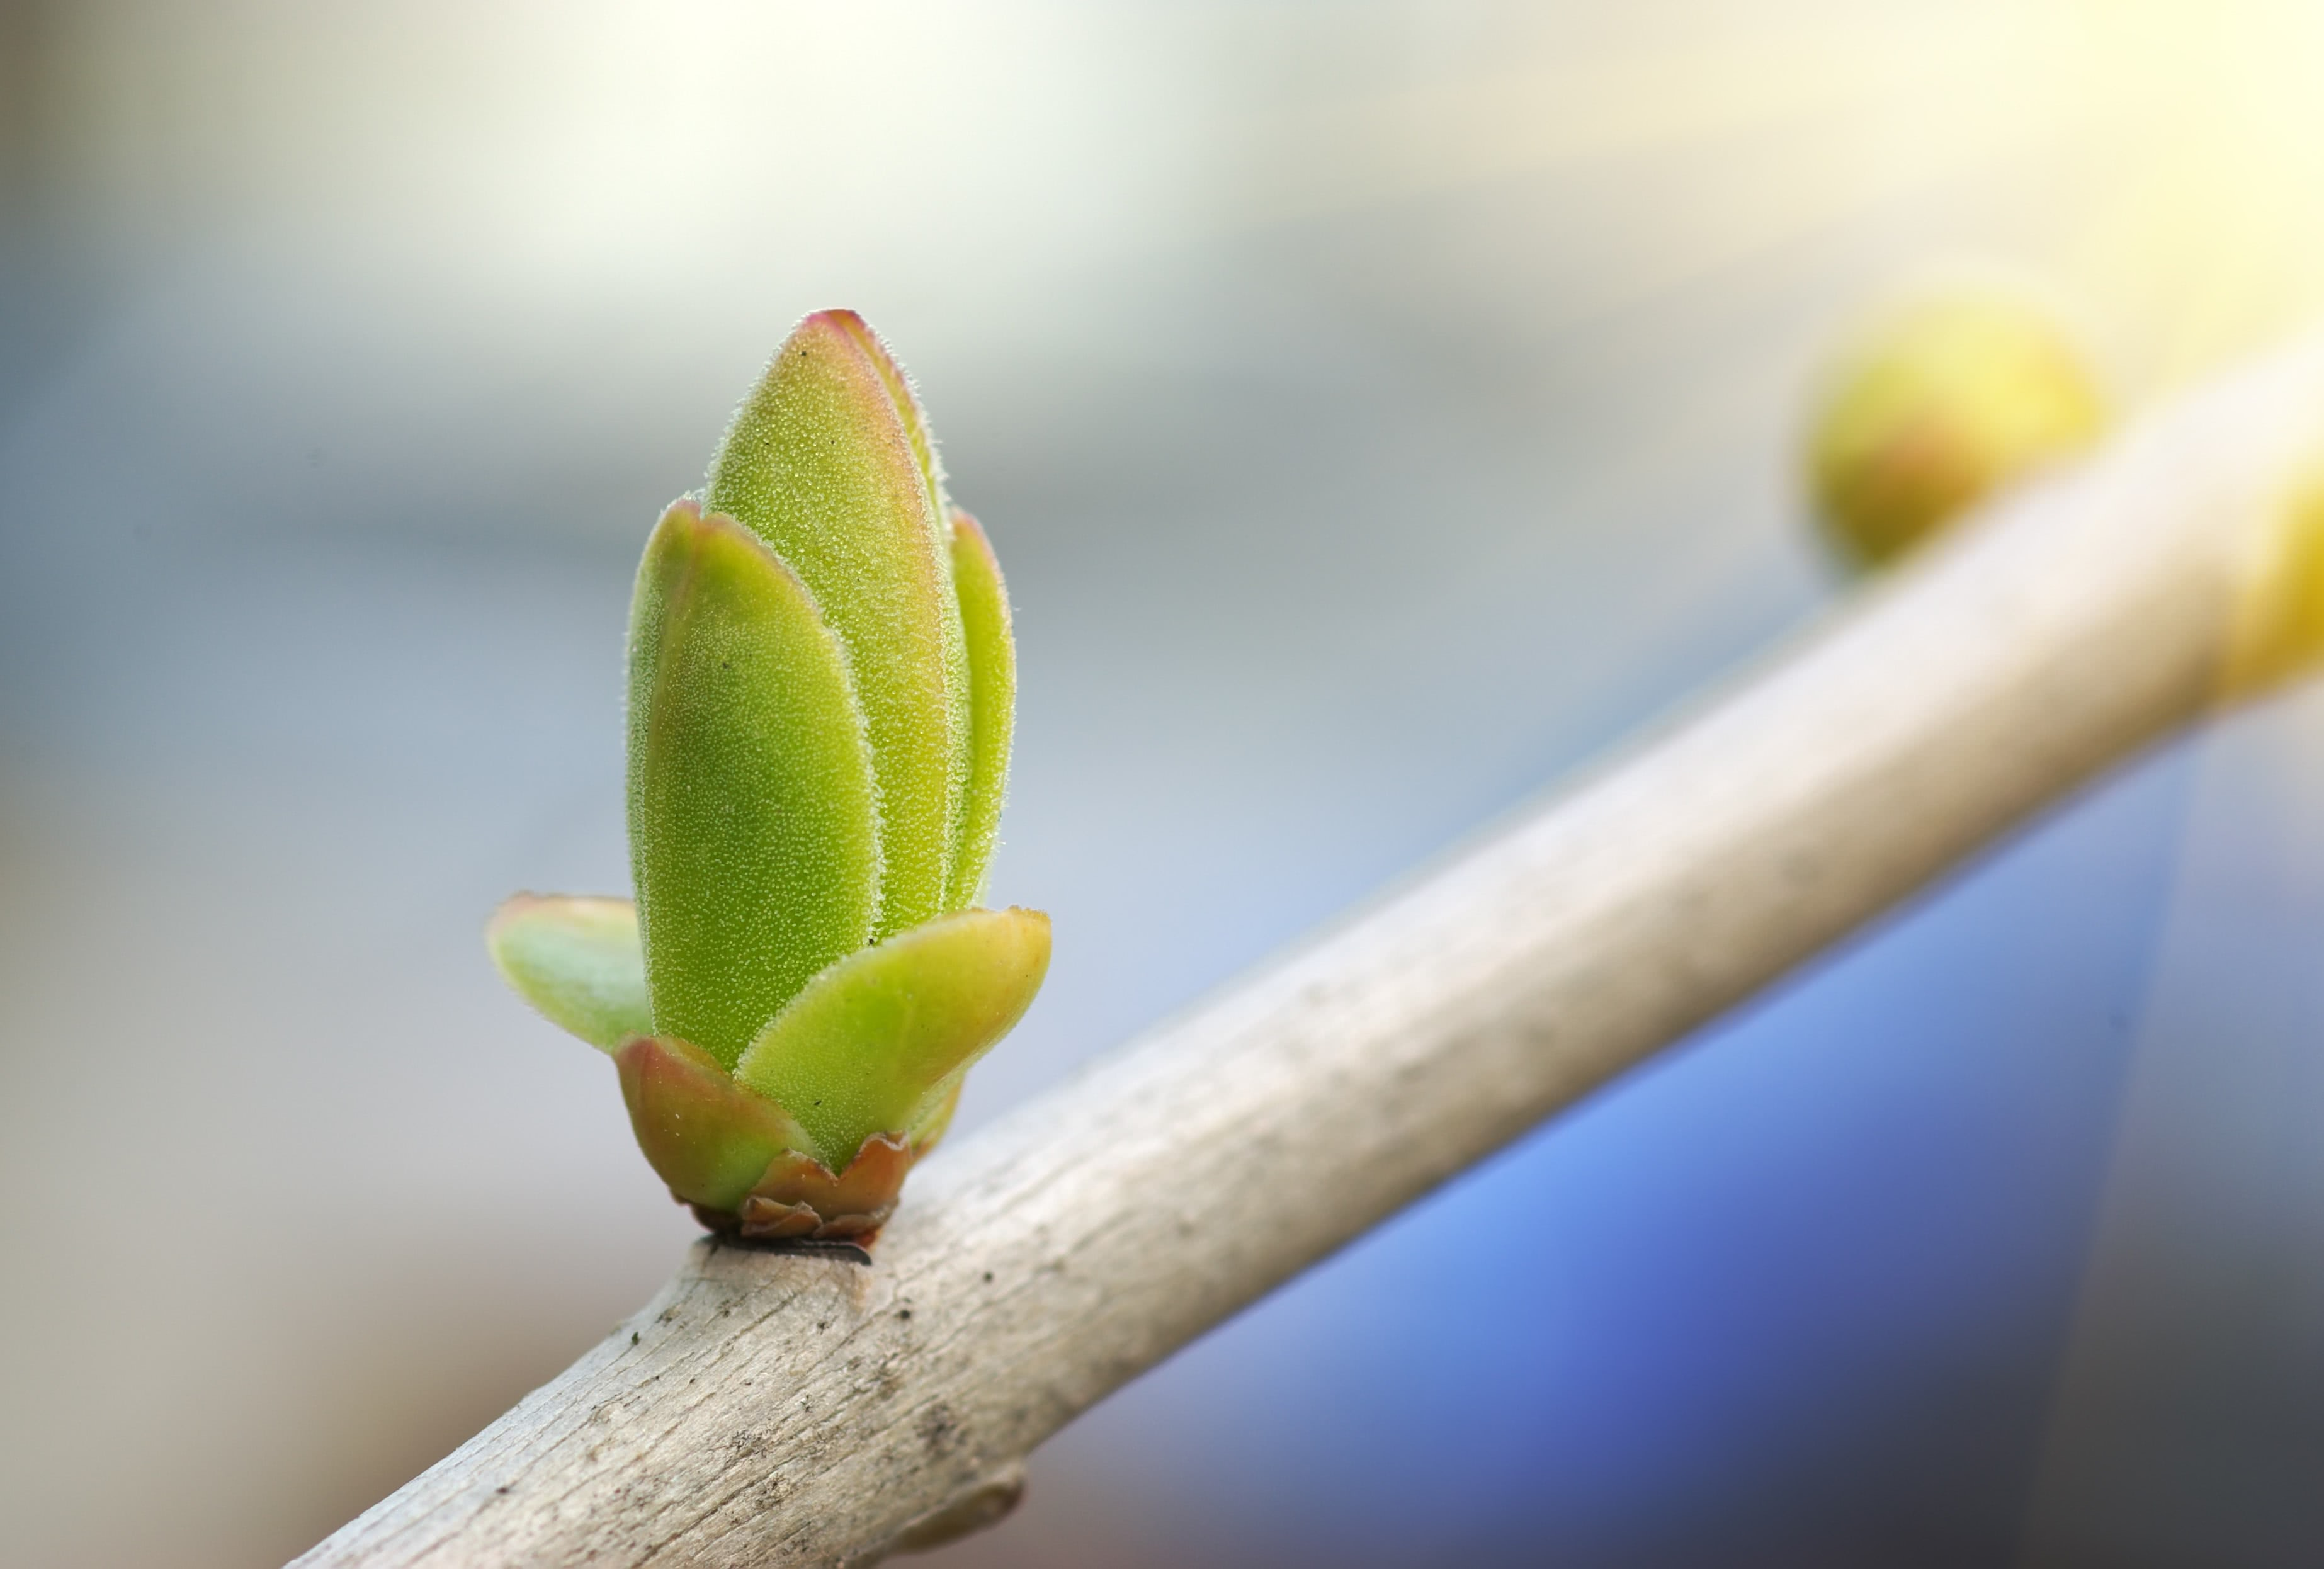 leaf bud cutting